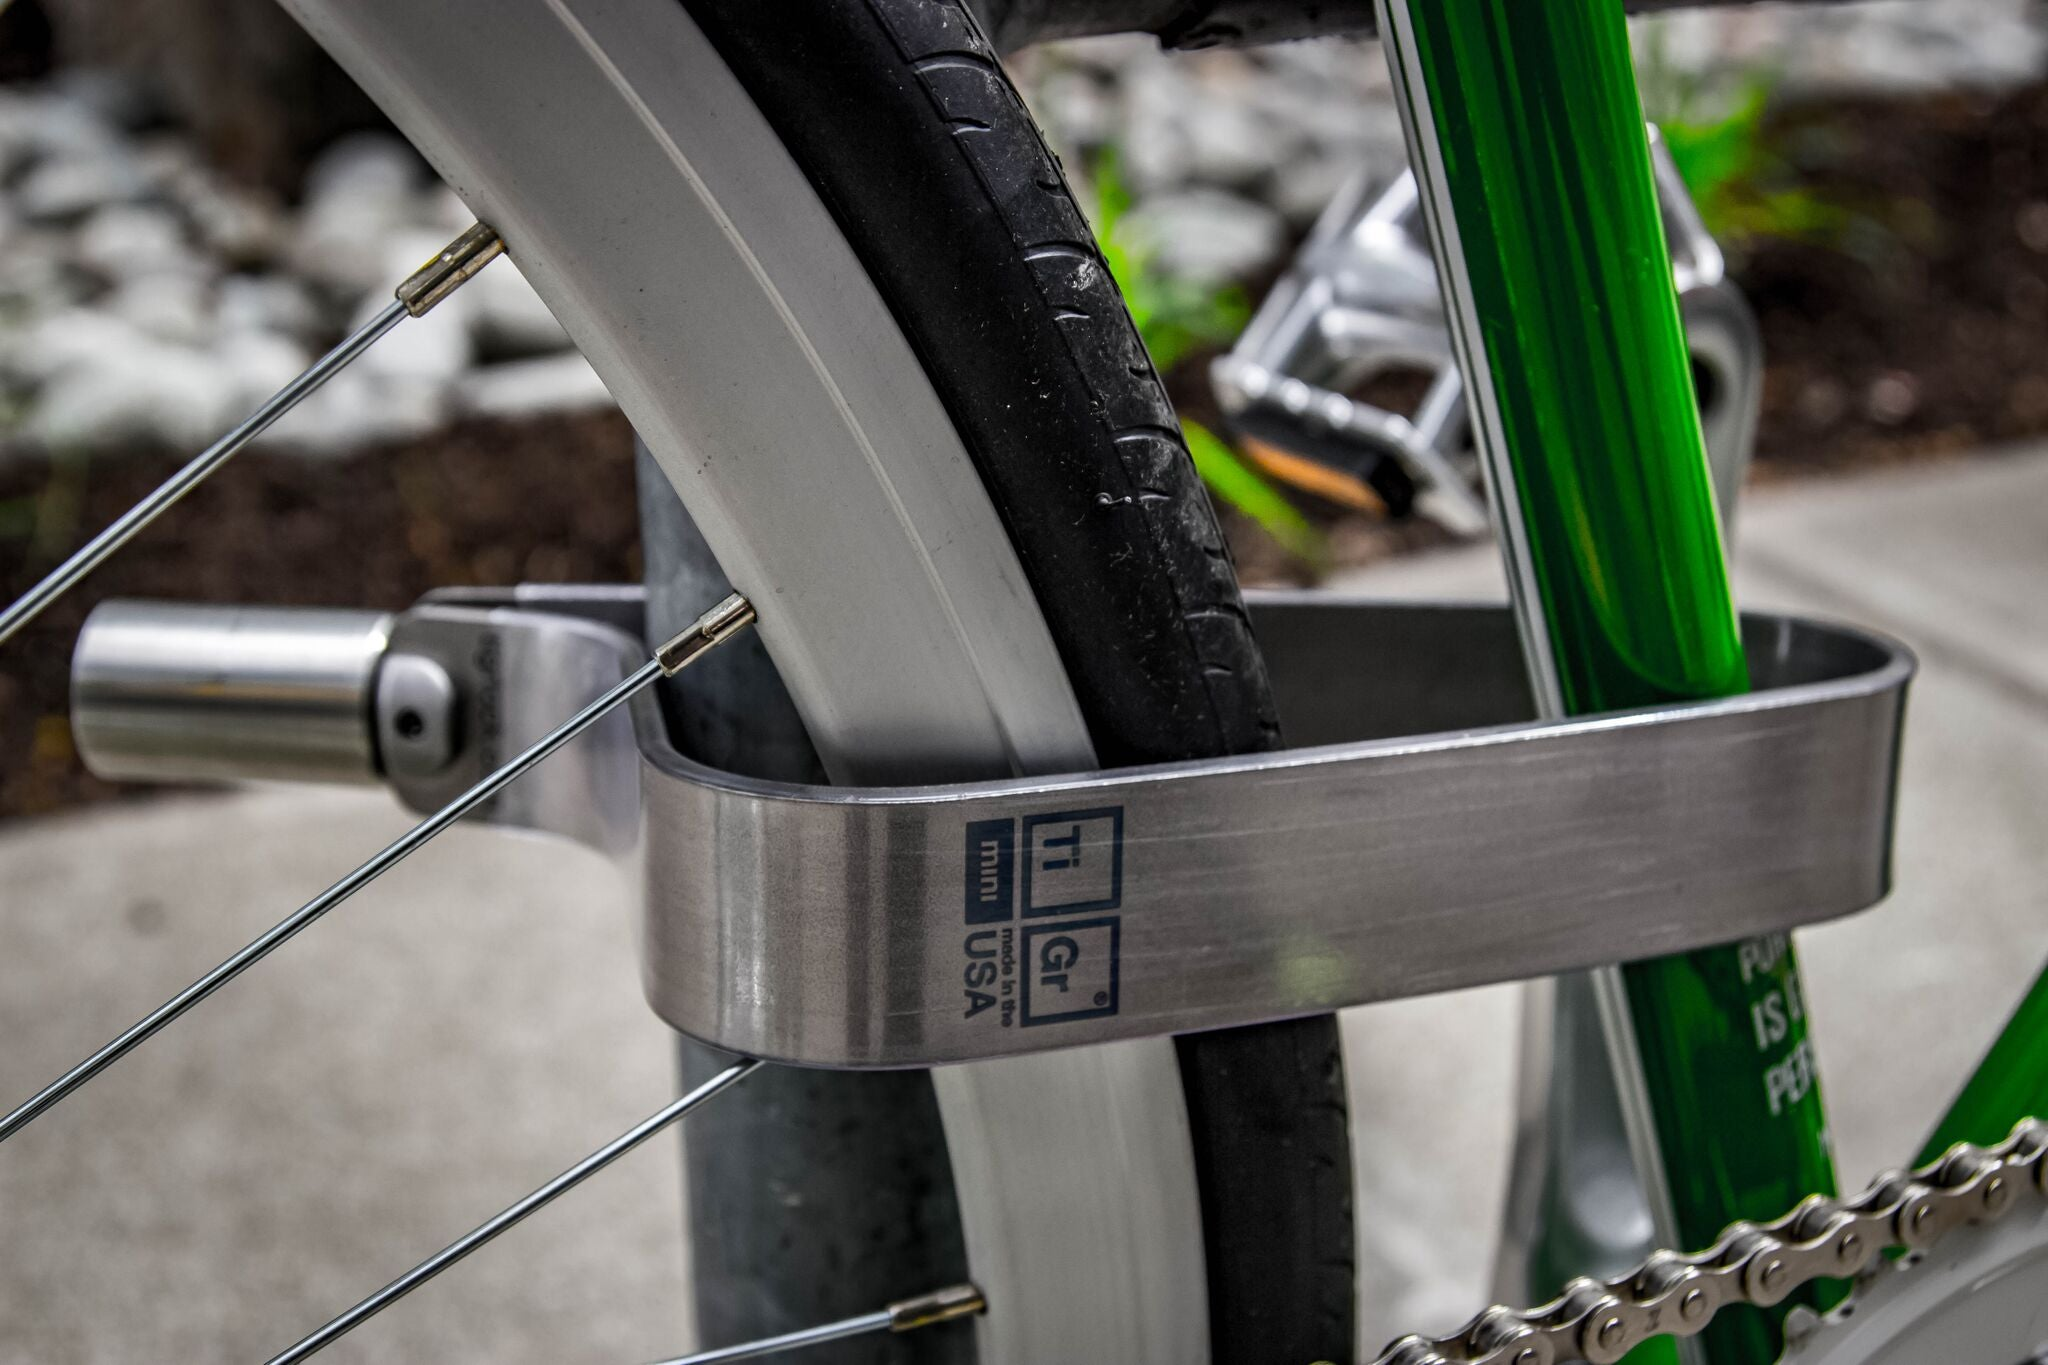 Tigr Mini Titanium Bike Lock